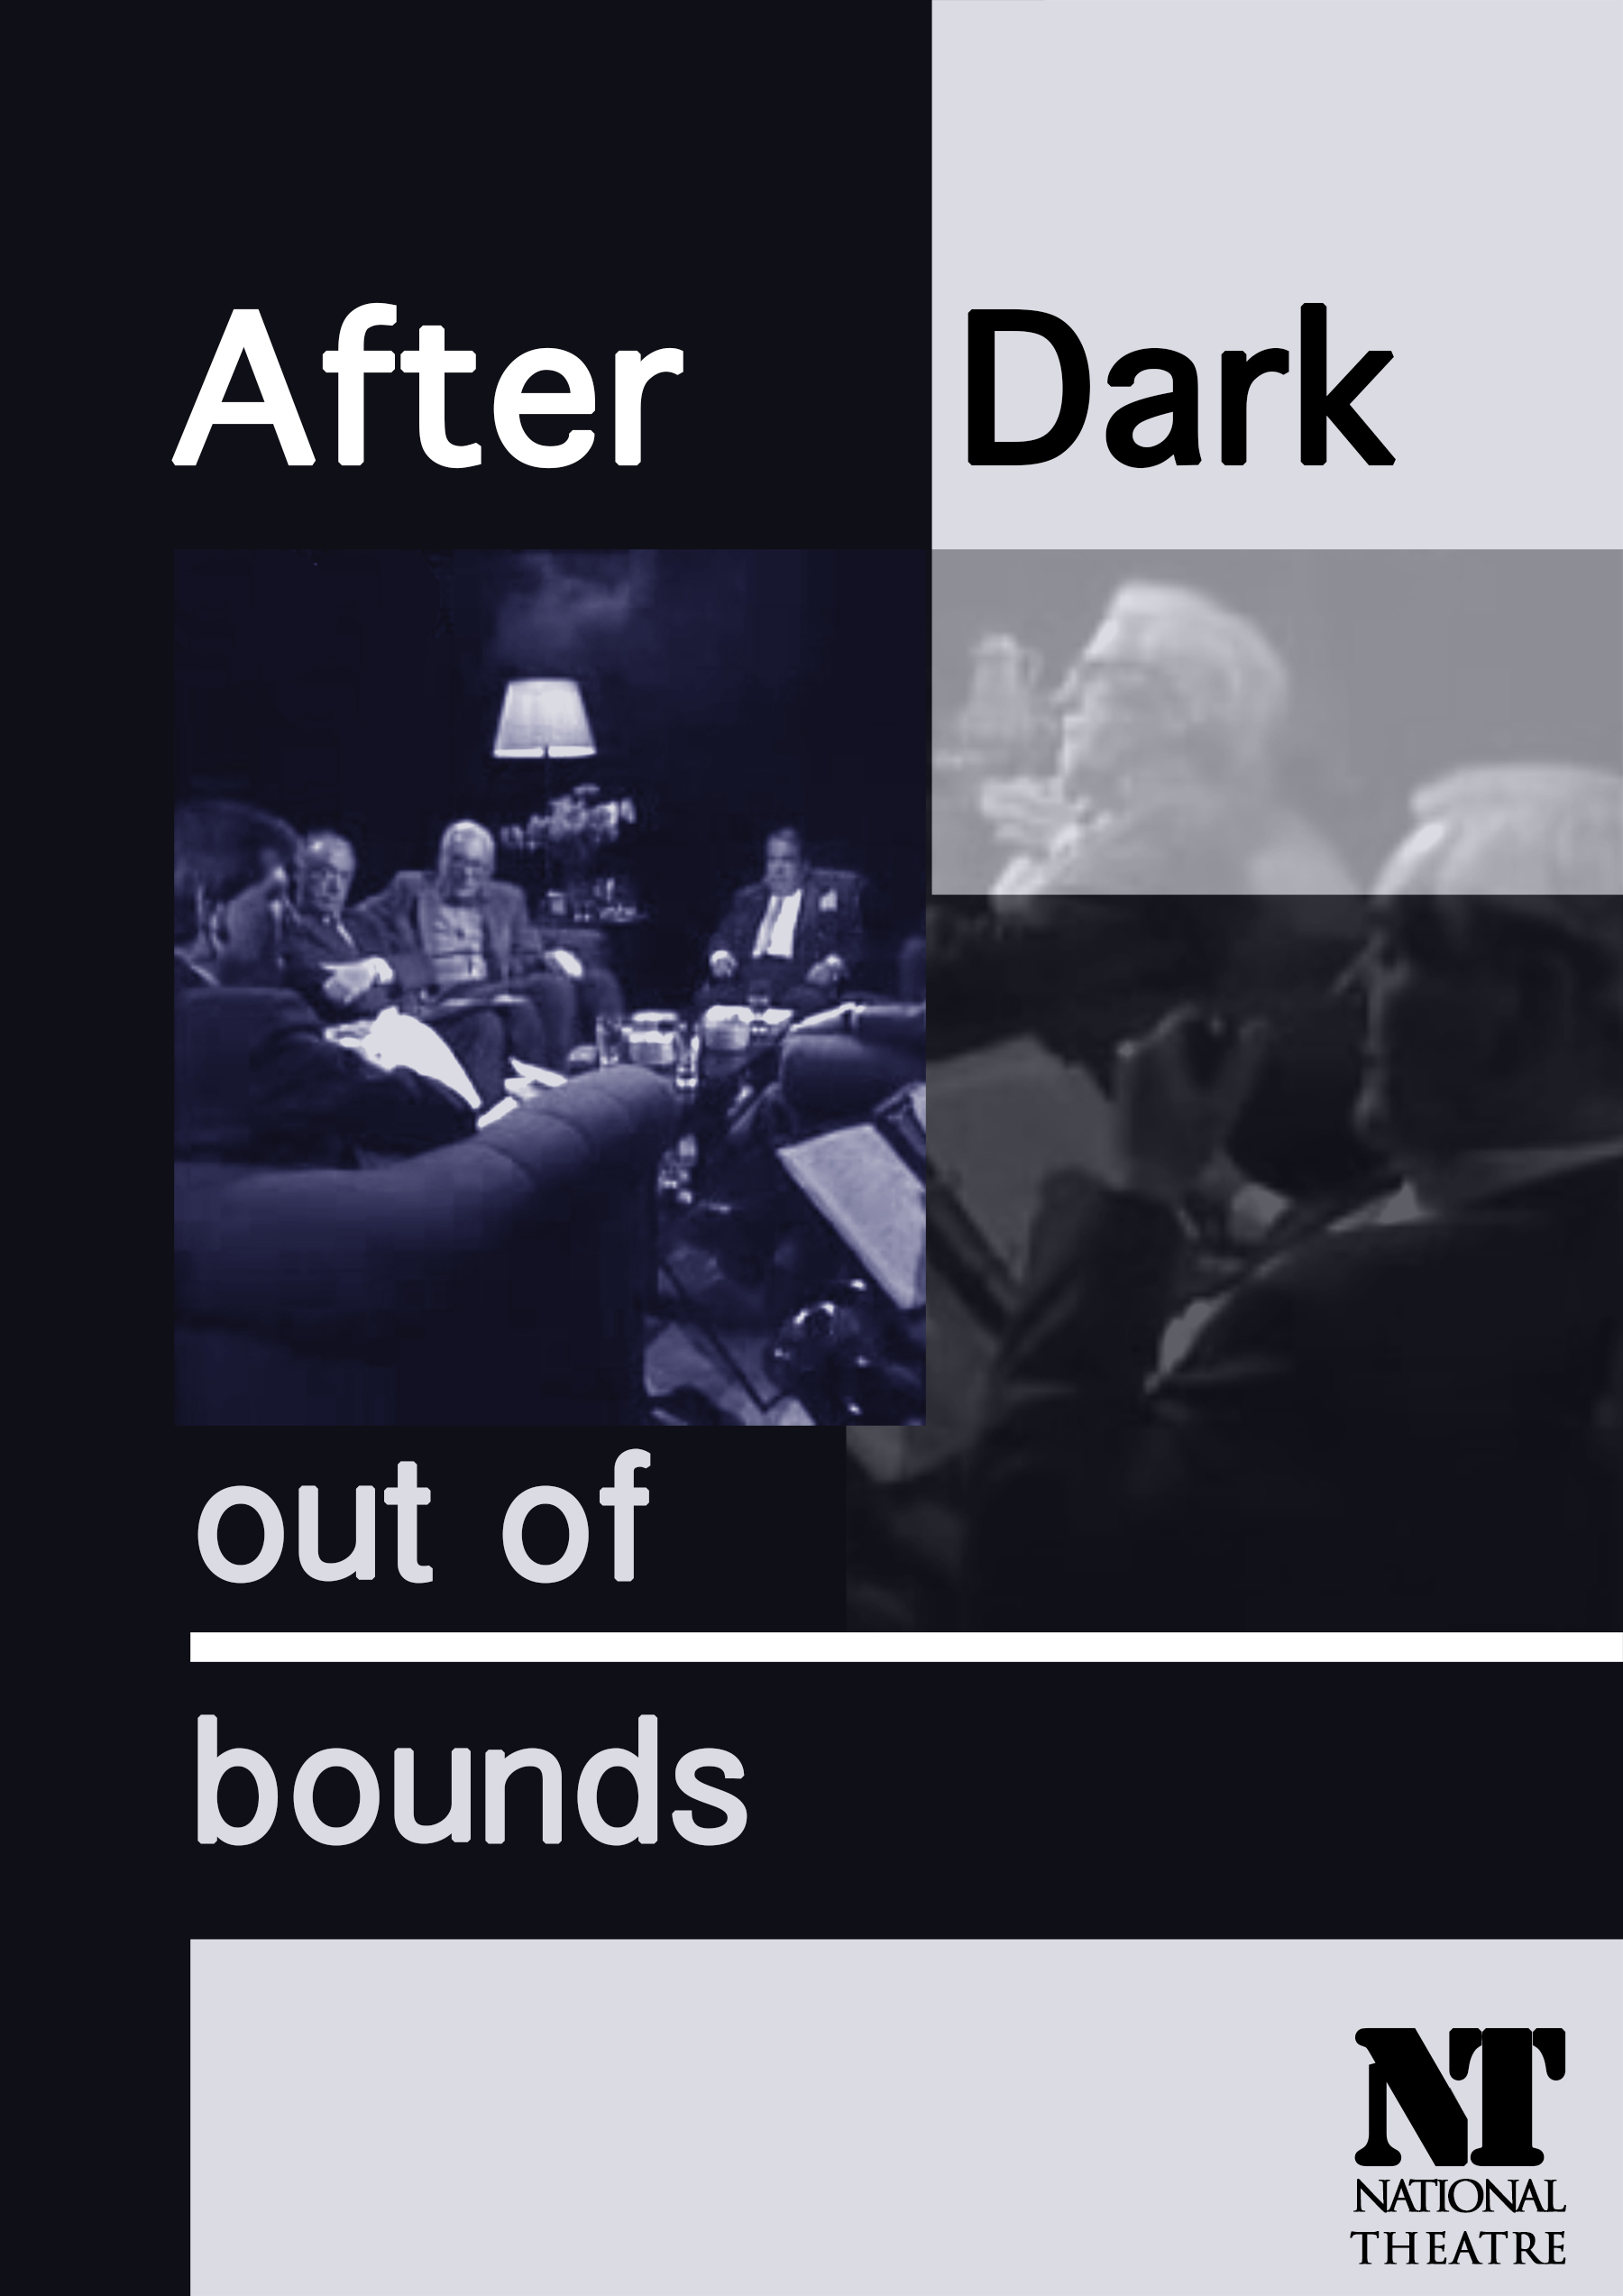 After Dark - out of bounds